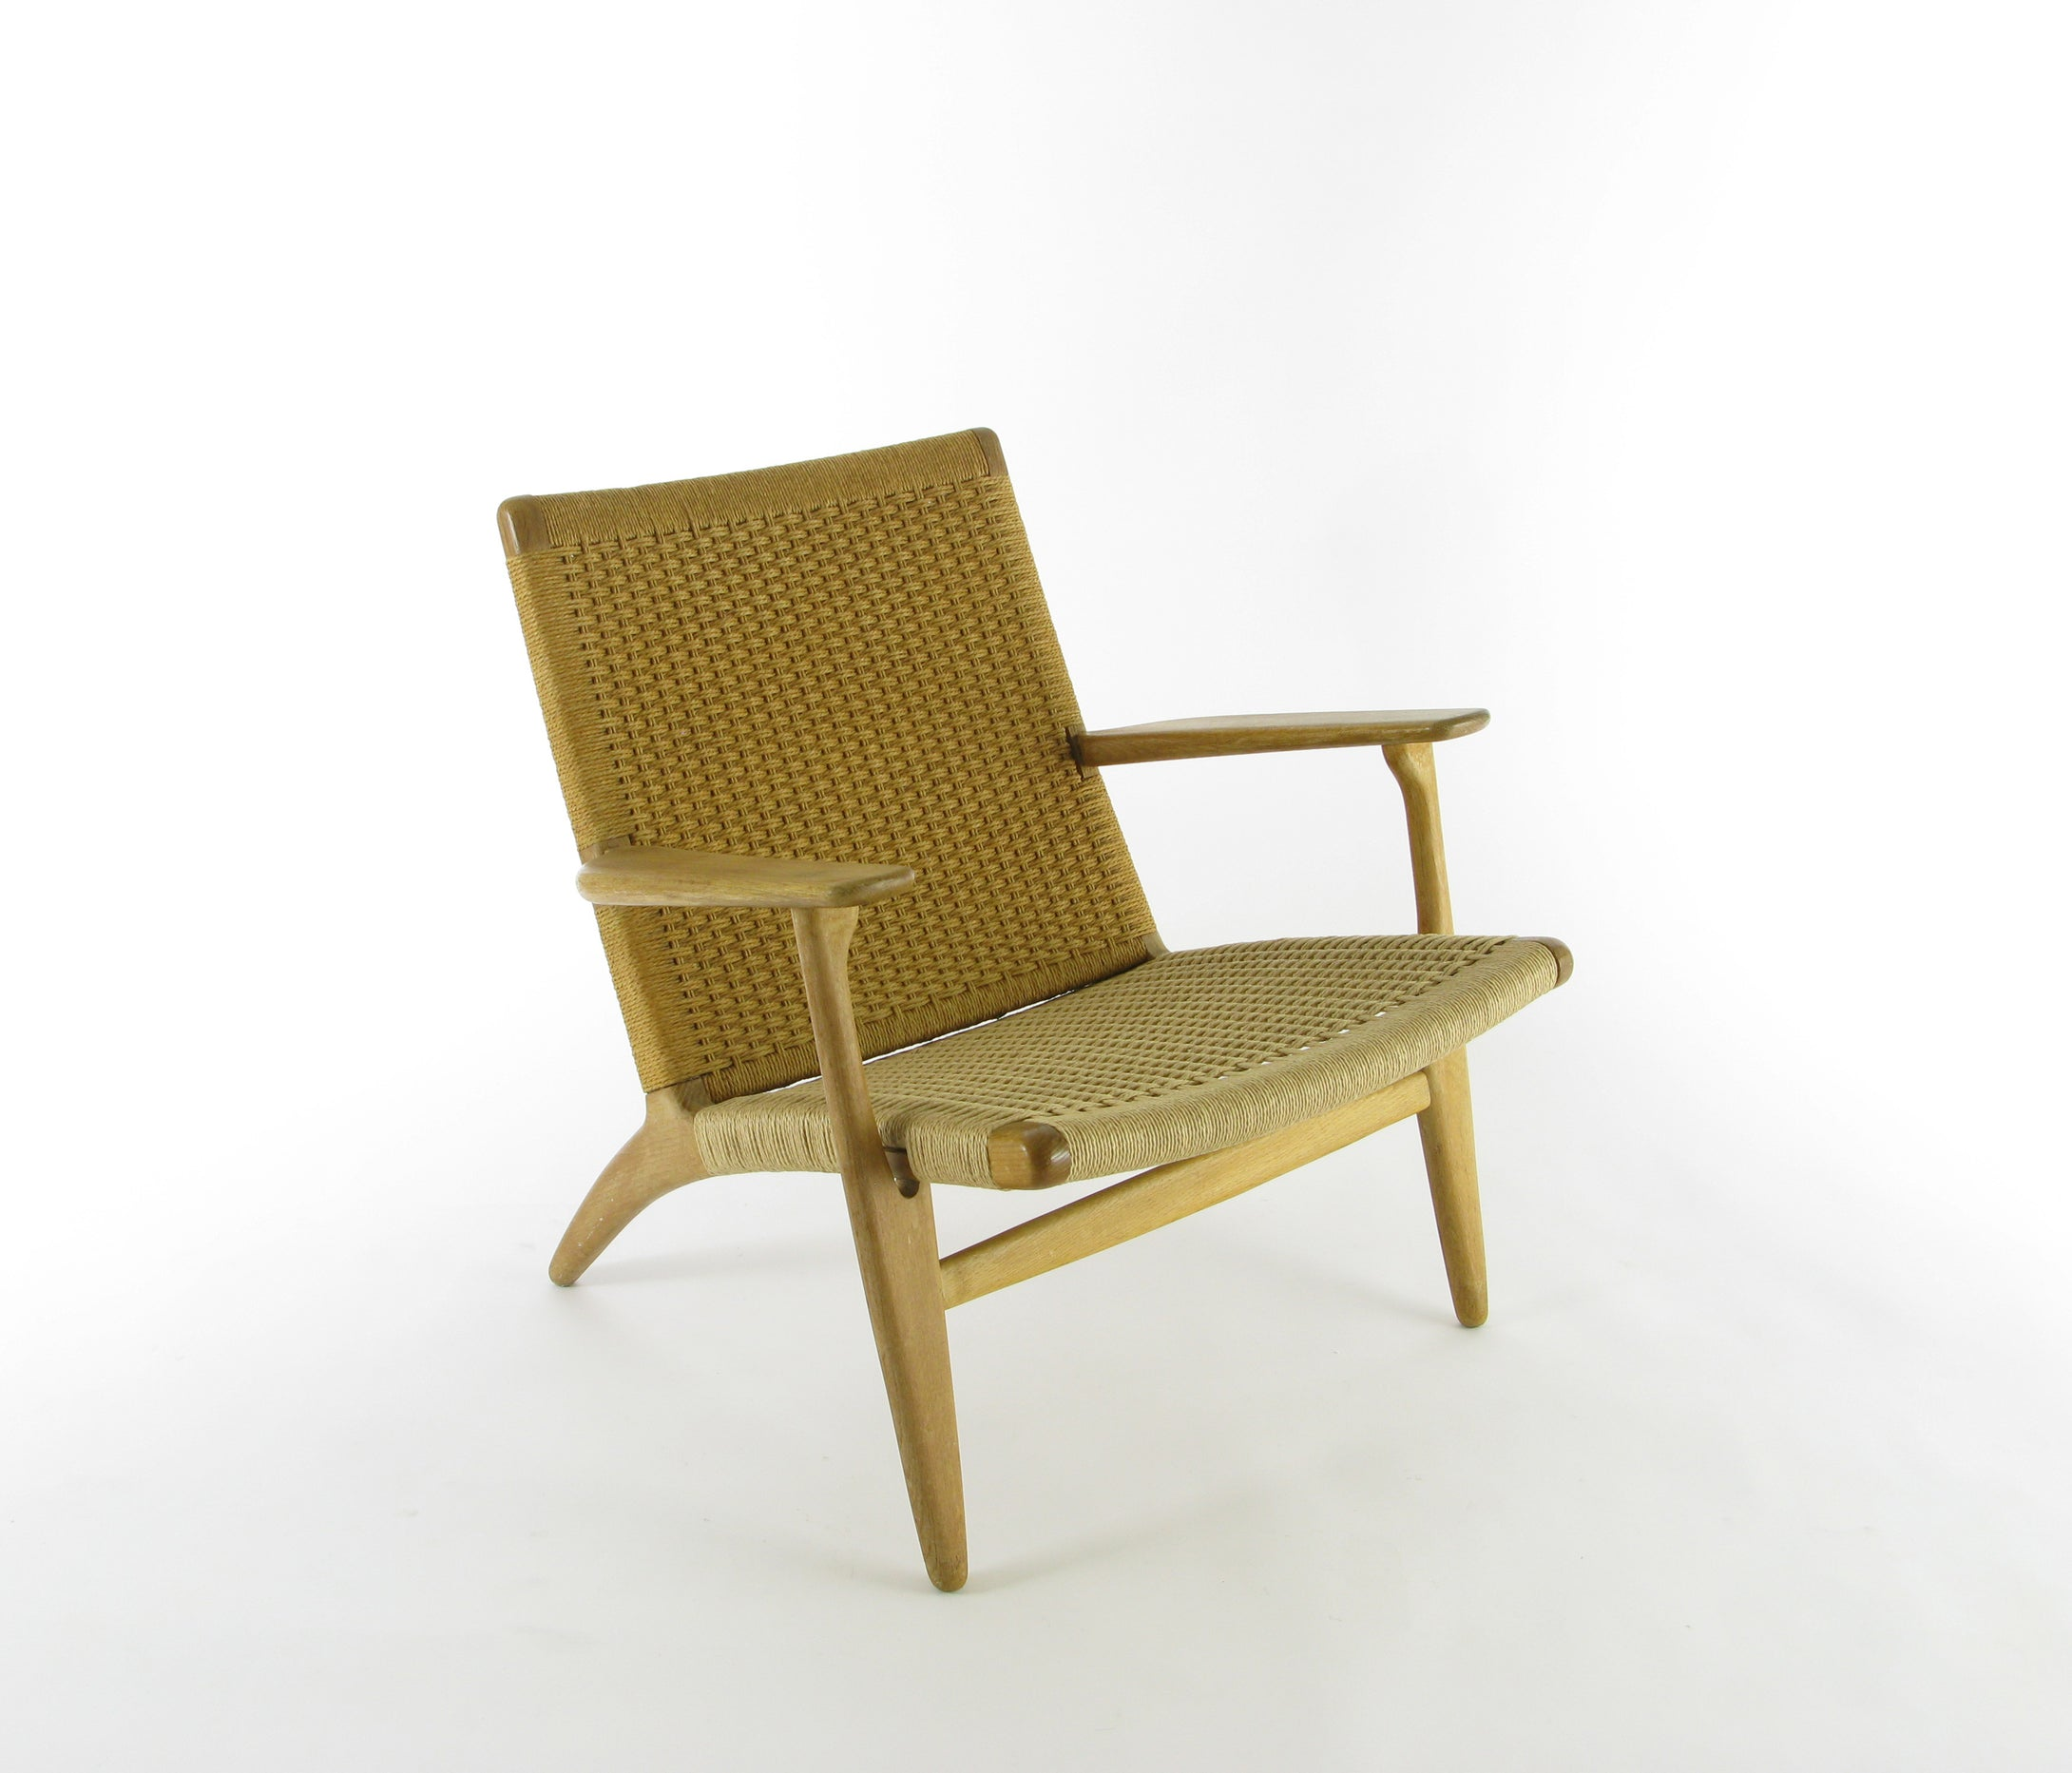 Fåtölj CH25 av Hans Wegner för Carl Hansen & Son. Ek samt snörad rygg och sits. Sitsen är nysnörad. H: 71cm, B: 70cm, D: 75cm. Etikettmärkt. Hans Wegner lounge chair CH25 for Carl Hansen & Son. Oak and natural cord. New seating cord. H: 71cm/28